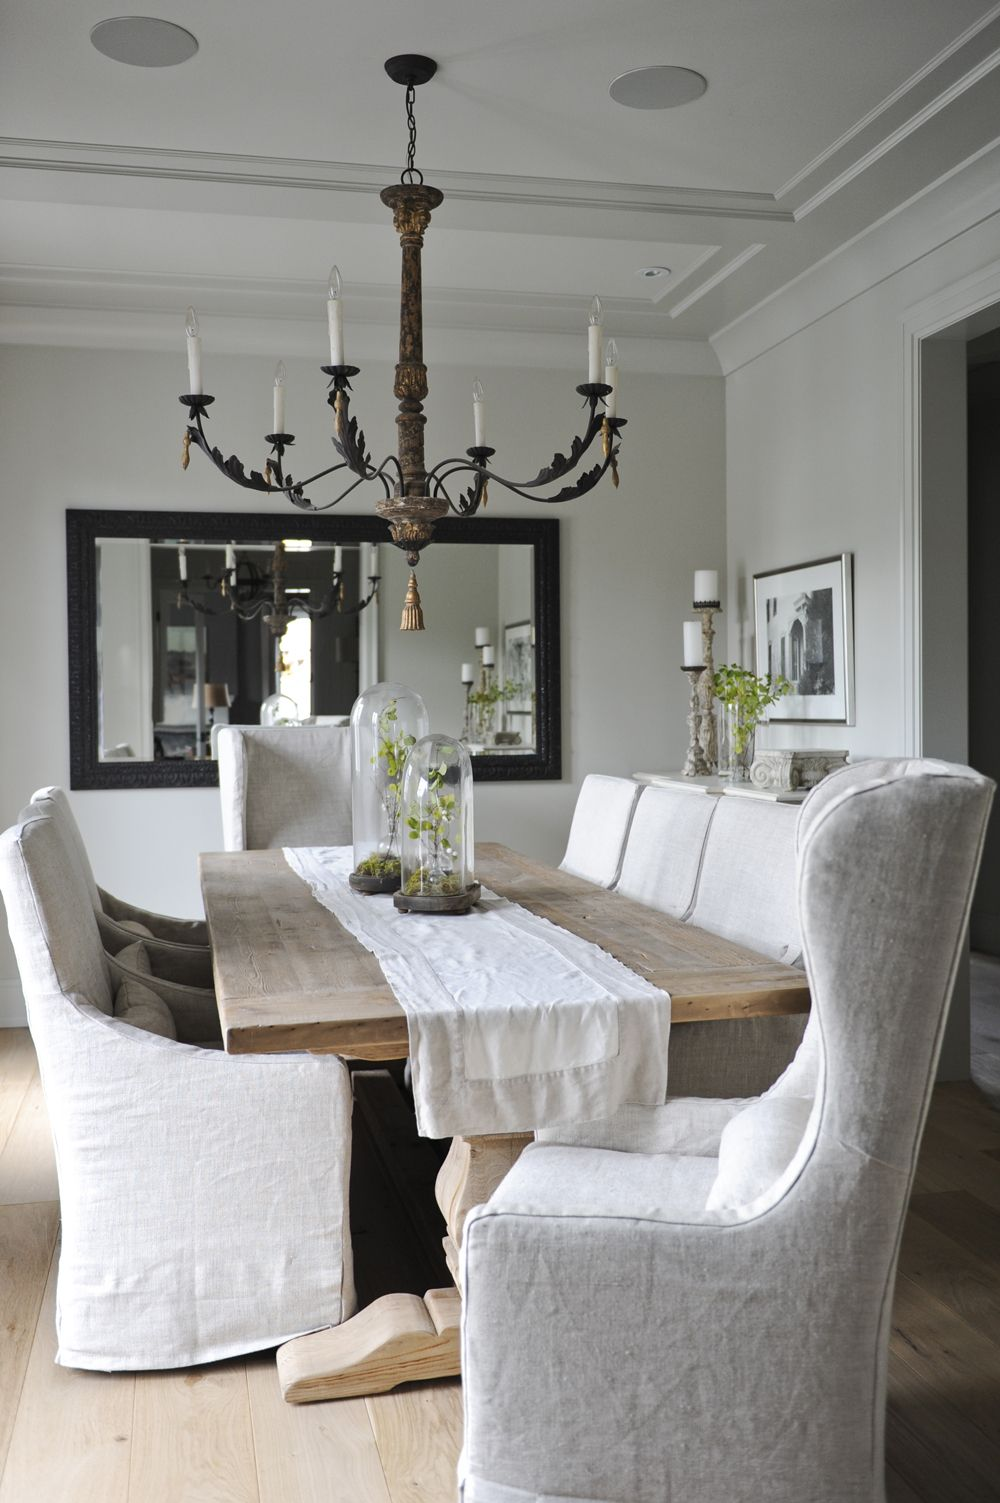 A Good Chandelier To Table Width Ratio